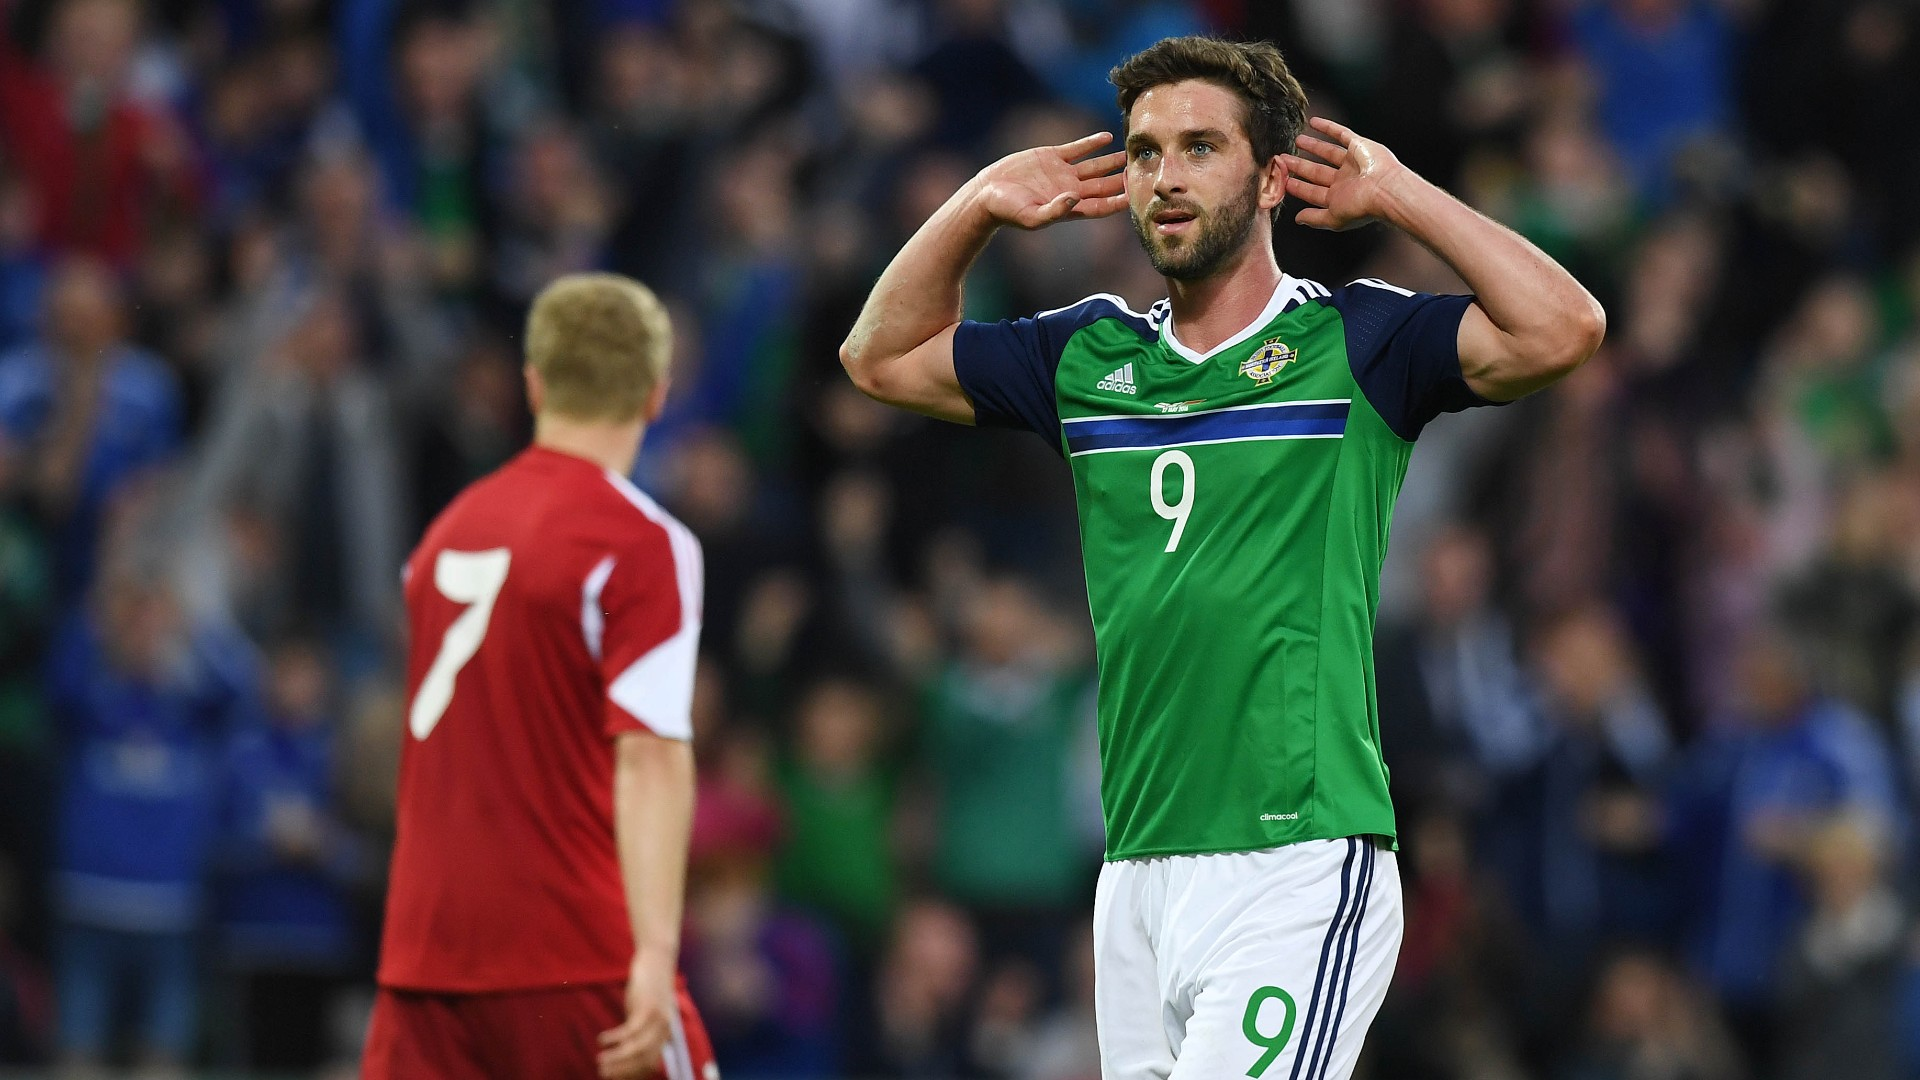 'The song exists because I scored 25 goals!' - Grigg reveals frustration at Euro 2016 cult song